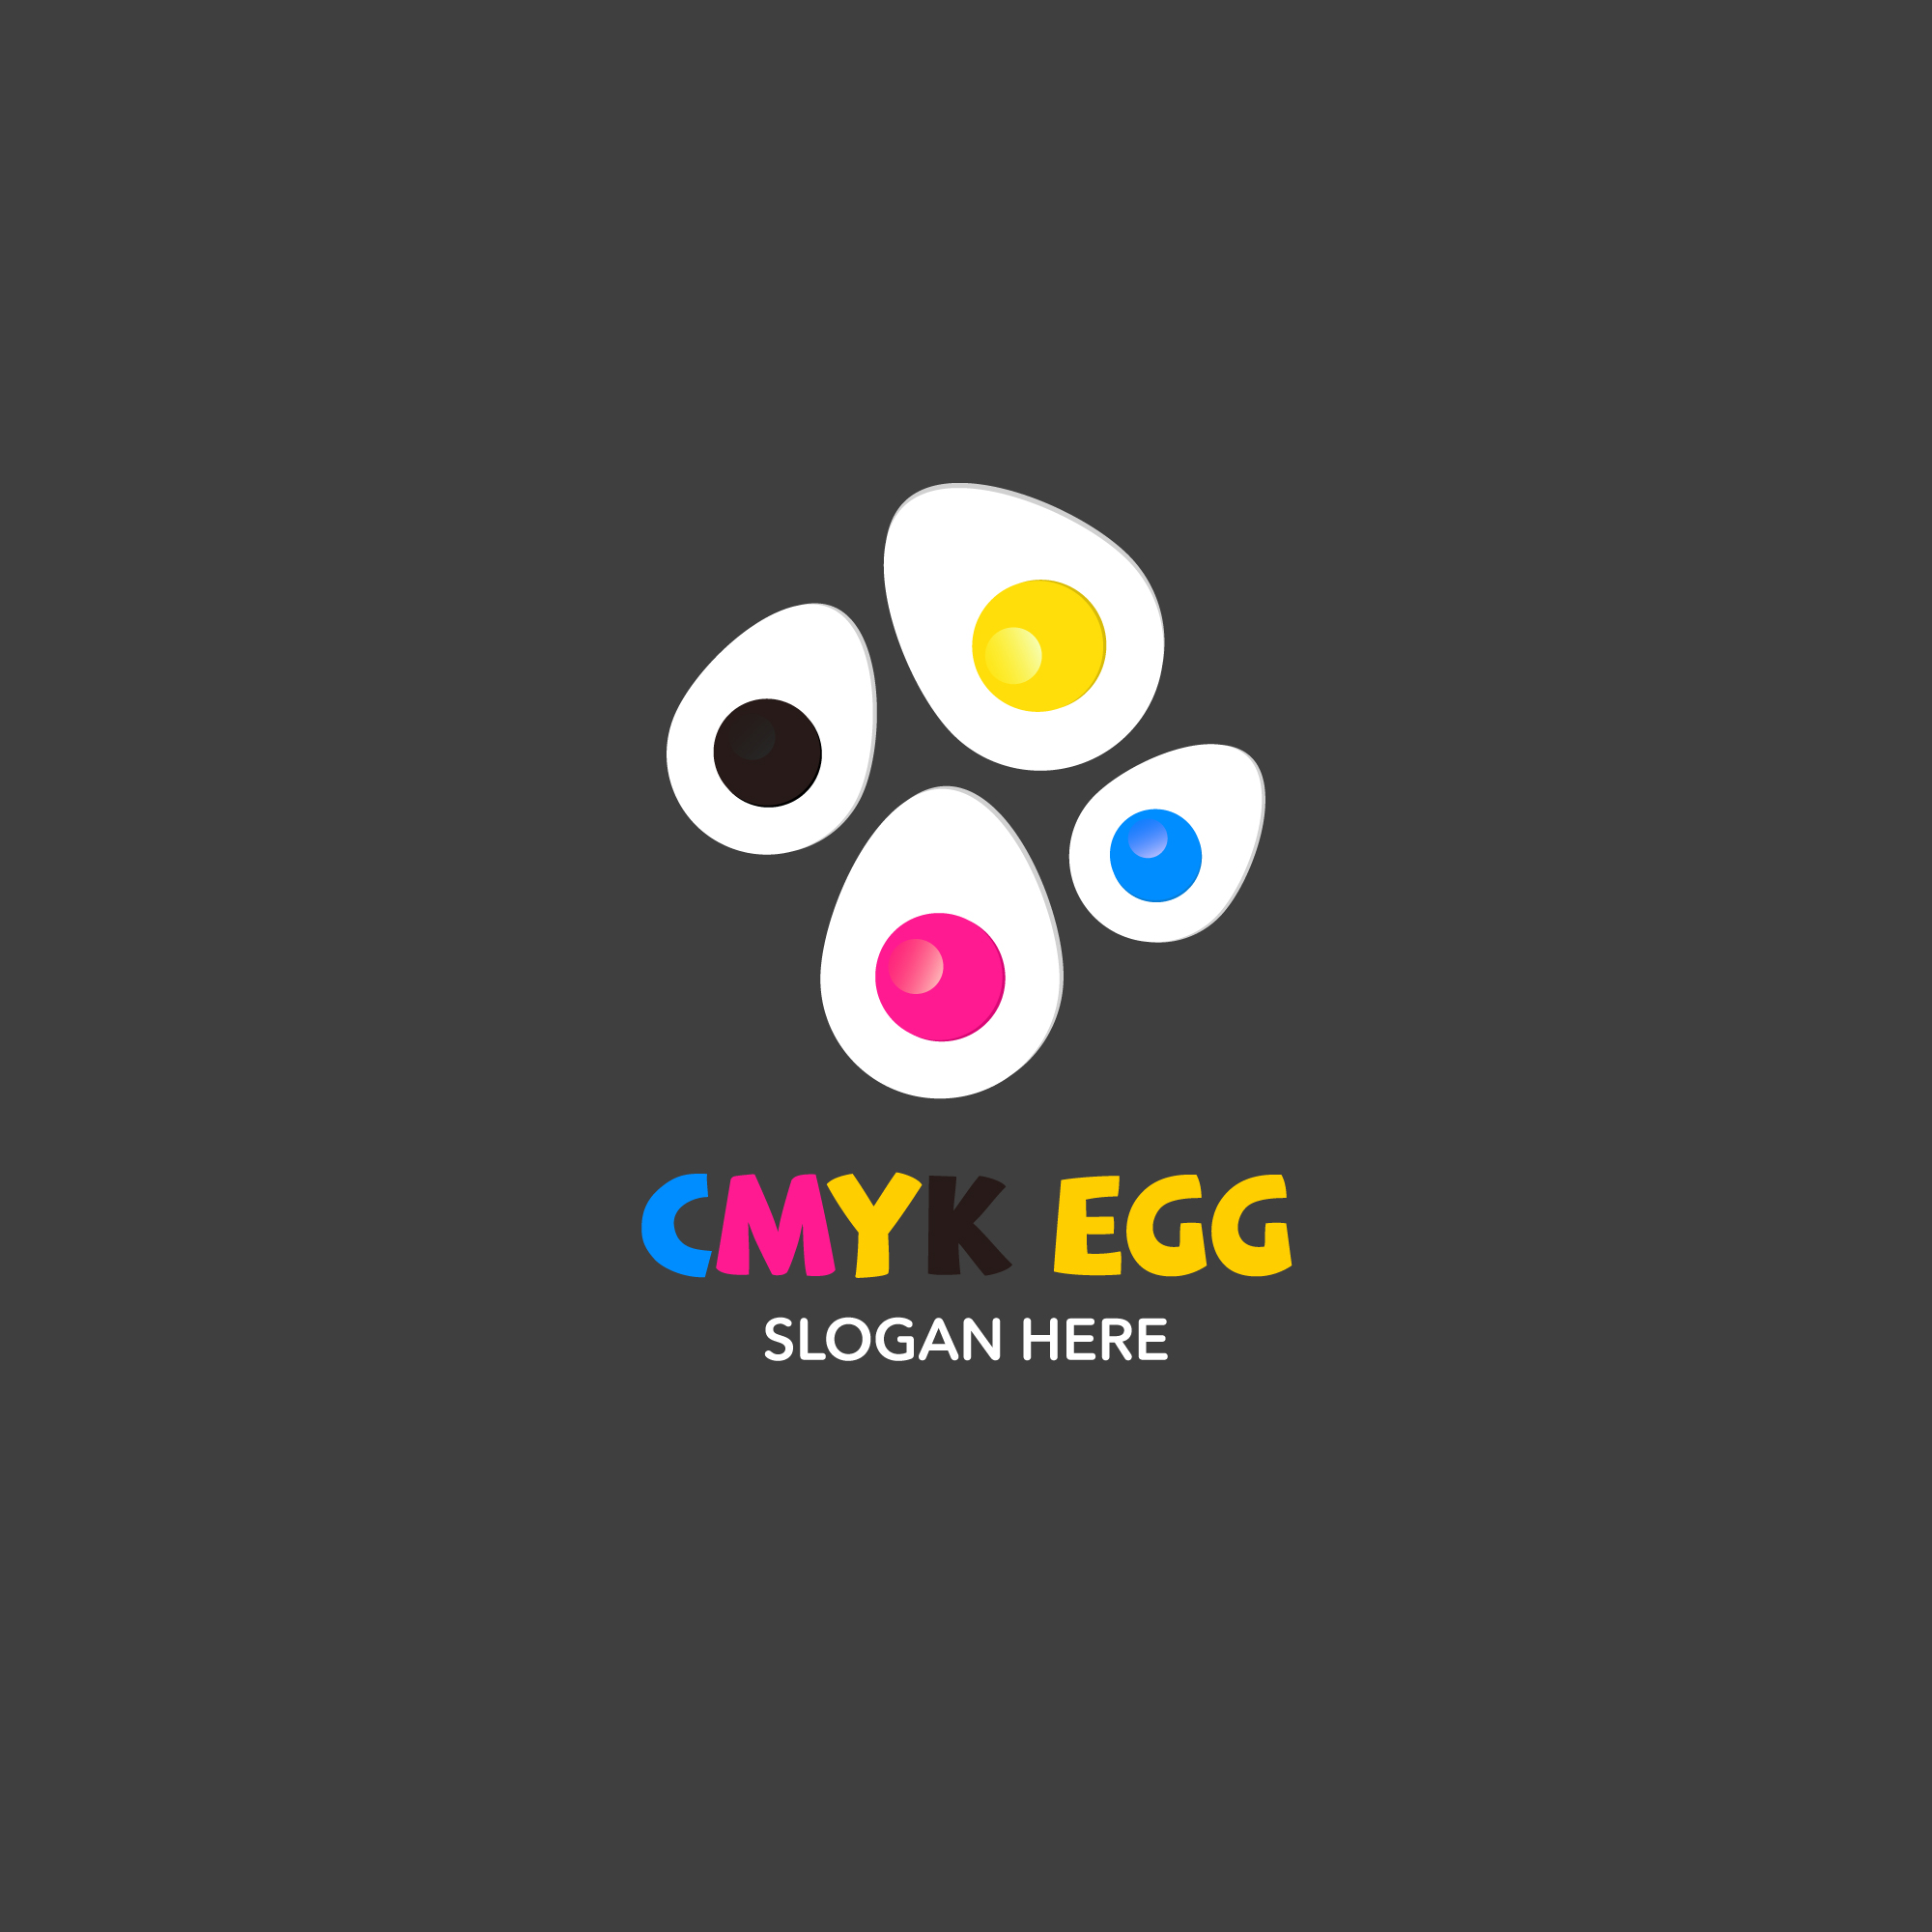 Eggs logo on grey background